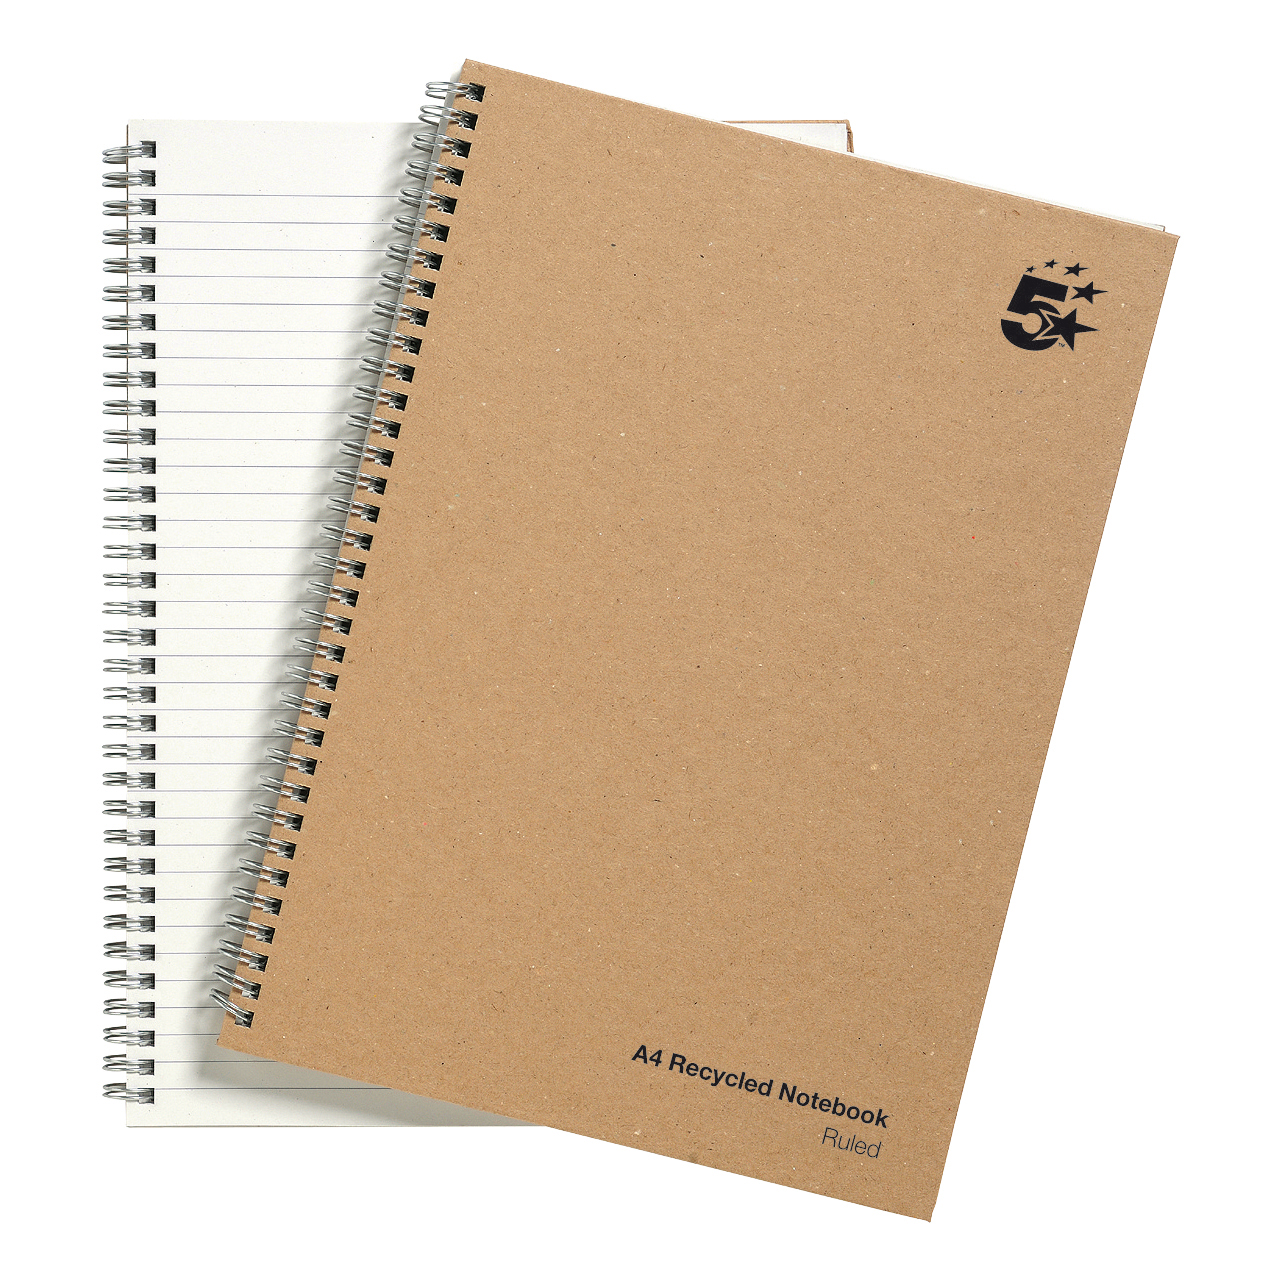 Spiral Note Books 5 Star Eco Notebook Wirebound 80gsm Ruled Recycled 160pp A4 Buff Pack 5